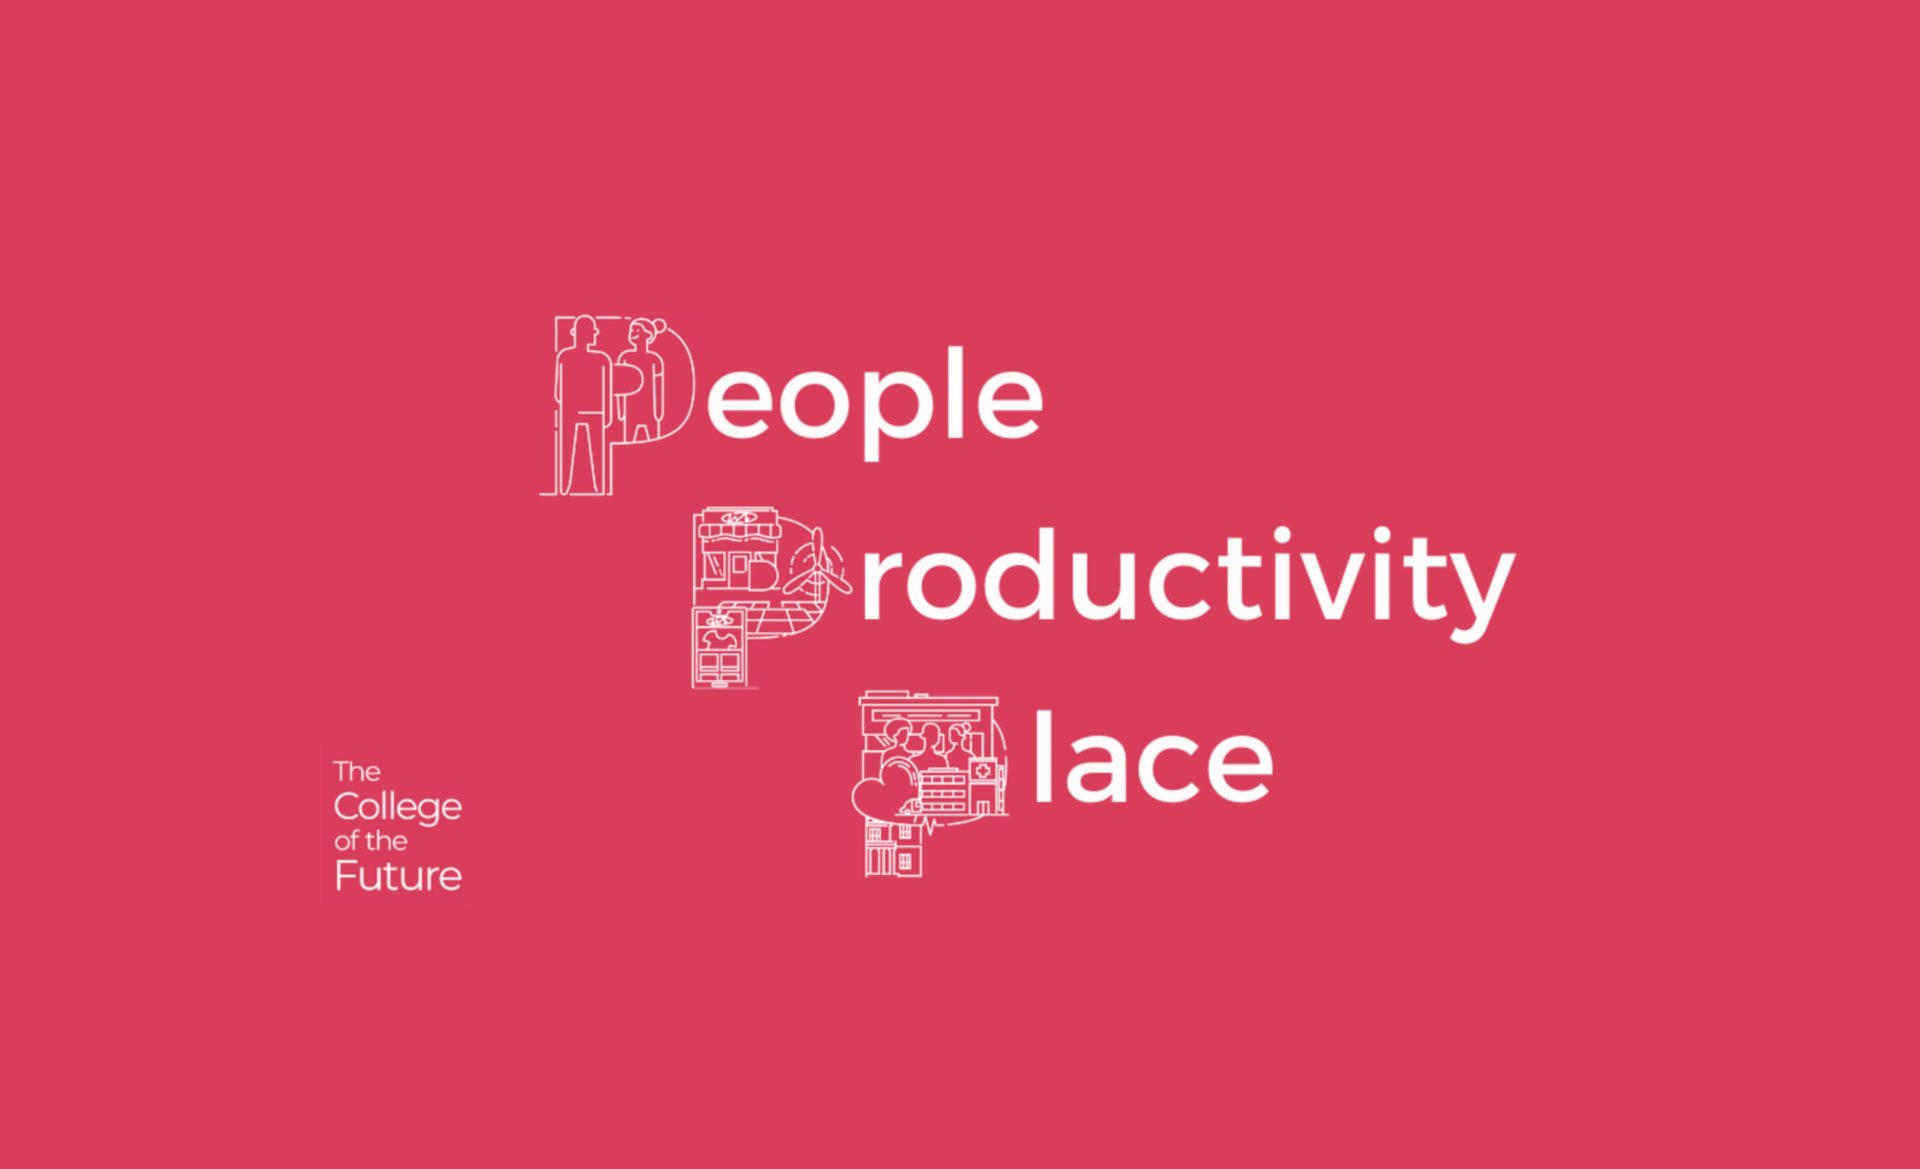 People Productivity Place pink image